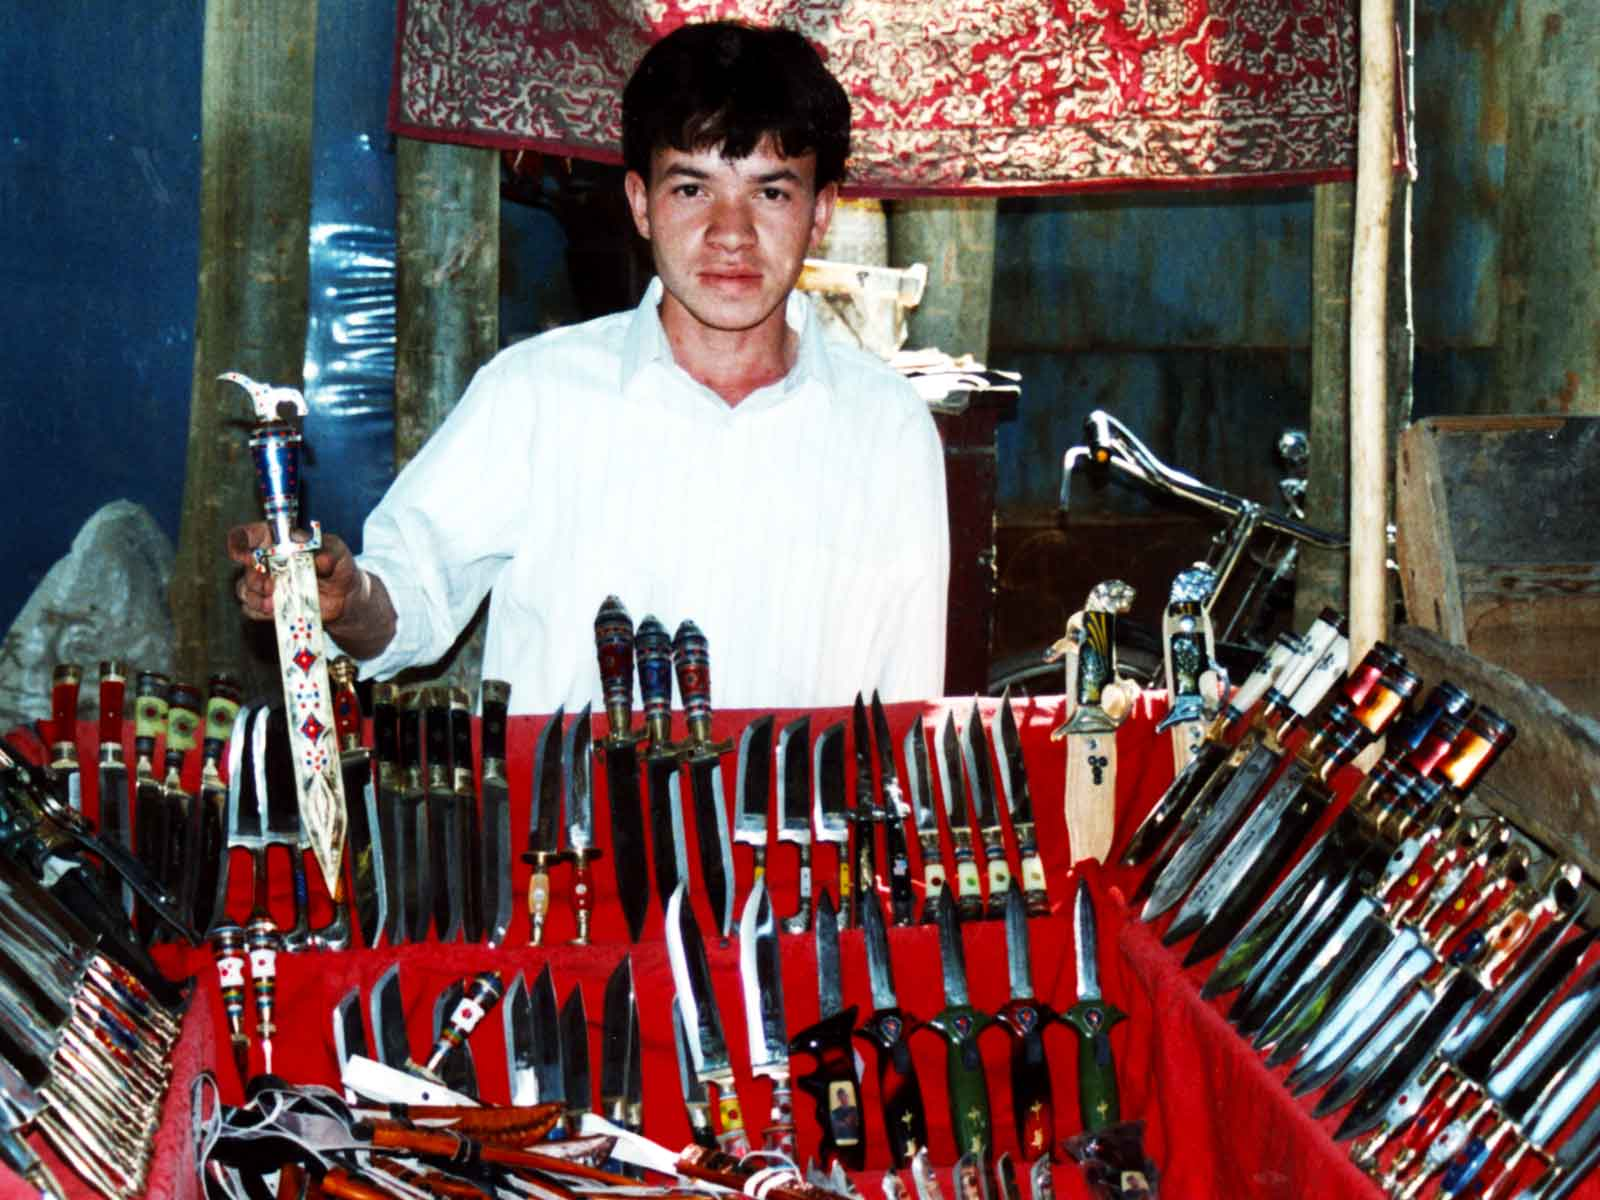 Kashgar knives - Silk Road China Photo Journal - Steven Andrew Martin - International Trade Market of Central and Western Asia